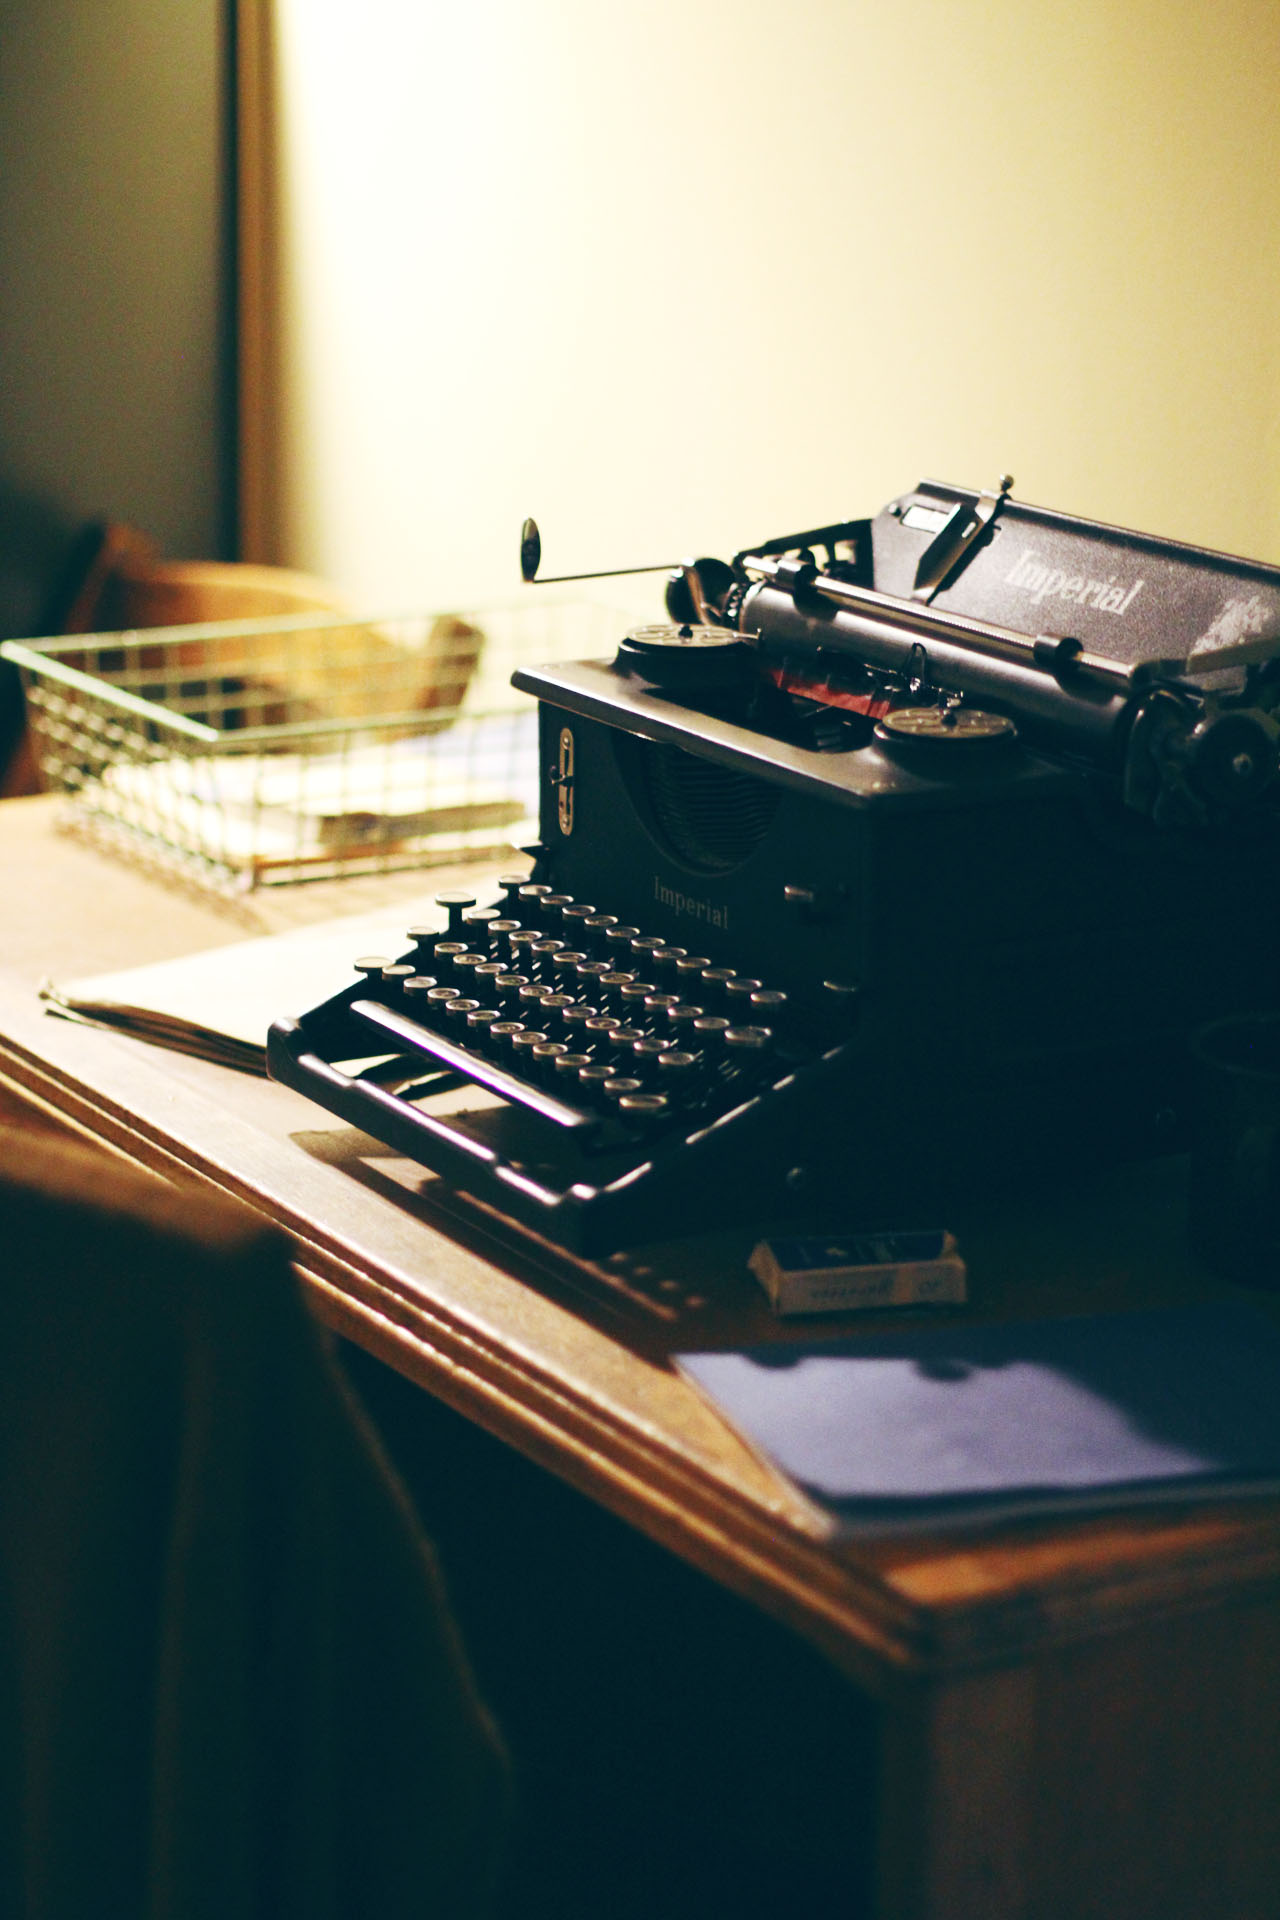 Day Trip: Bletchley Park